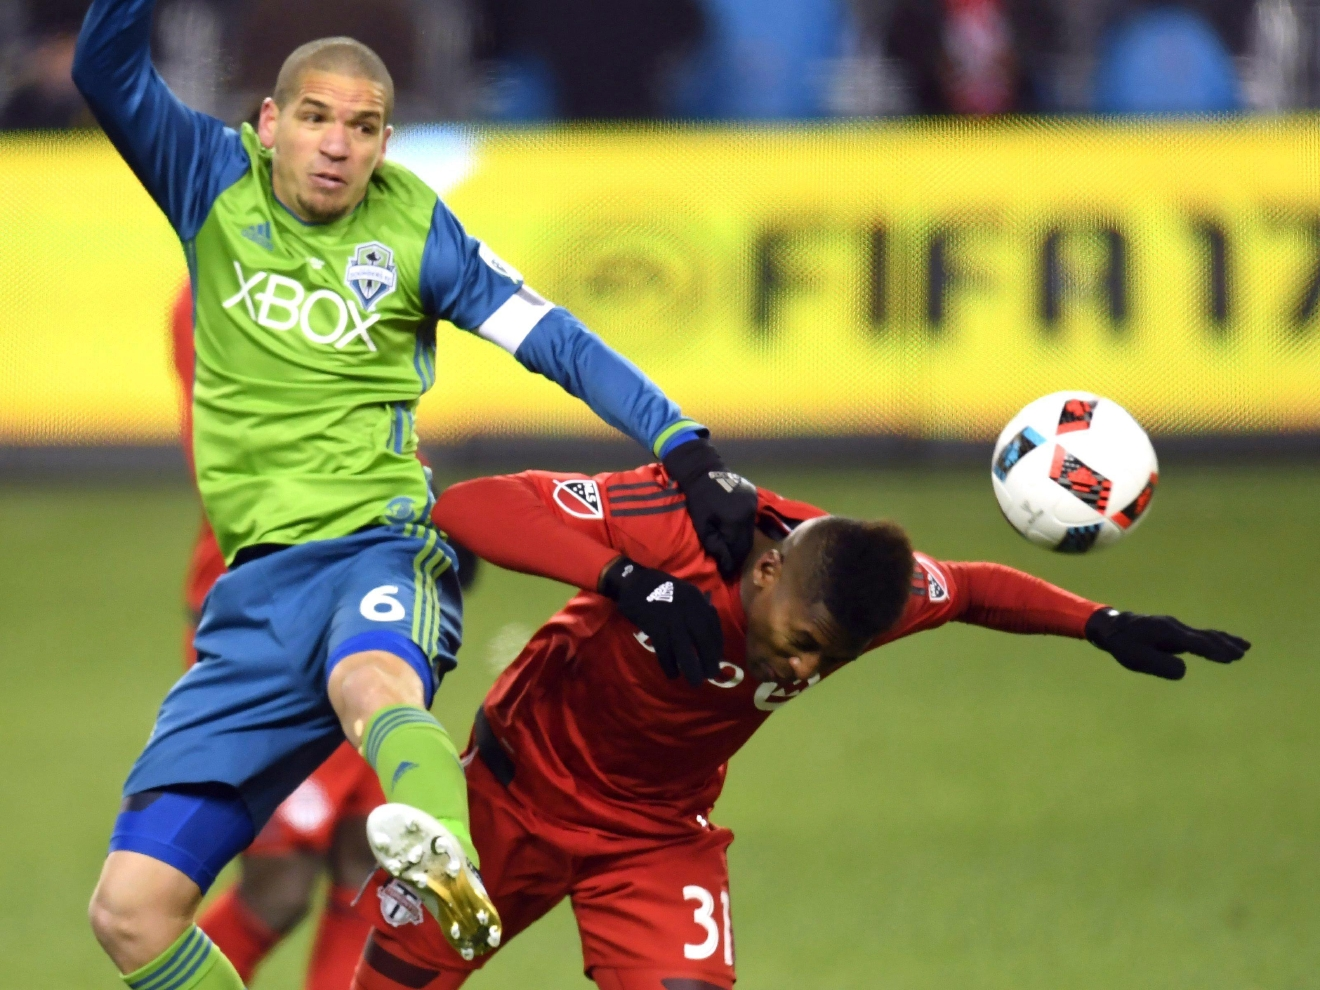 Seattle Sounders midfielder Osvaldo Alonso (6) and Toronto FC midfielder Armando Cooper (31) battle for the ball during first-half MLS Cup final soccer action in Toronto, Saturday, Dec. 10, 2016. (Frank Gunn/The Canadian Press via AP)